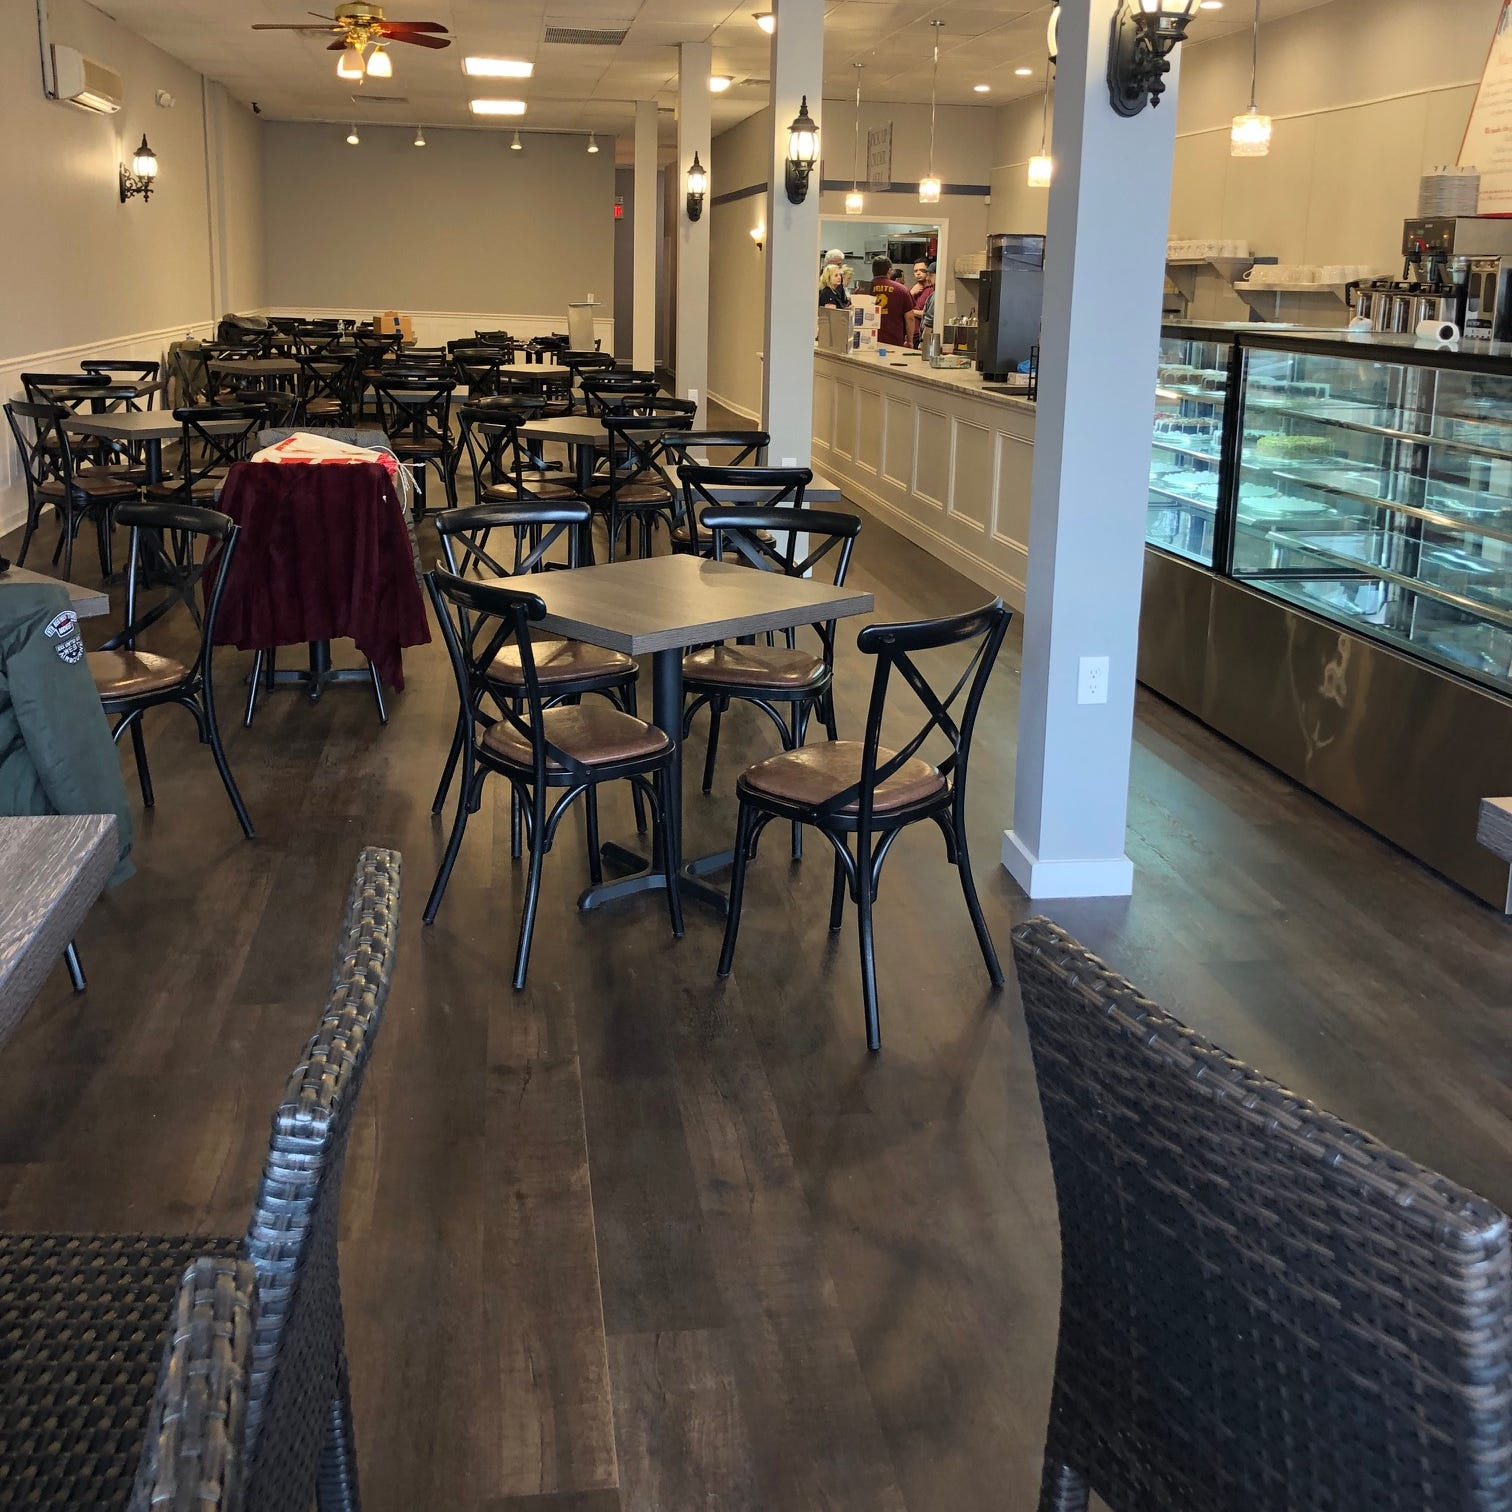 Former customer reopens Mara's Cafe & Bakery, a 'fixture' of the Denville community